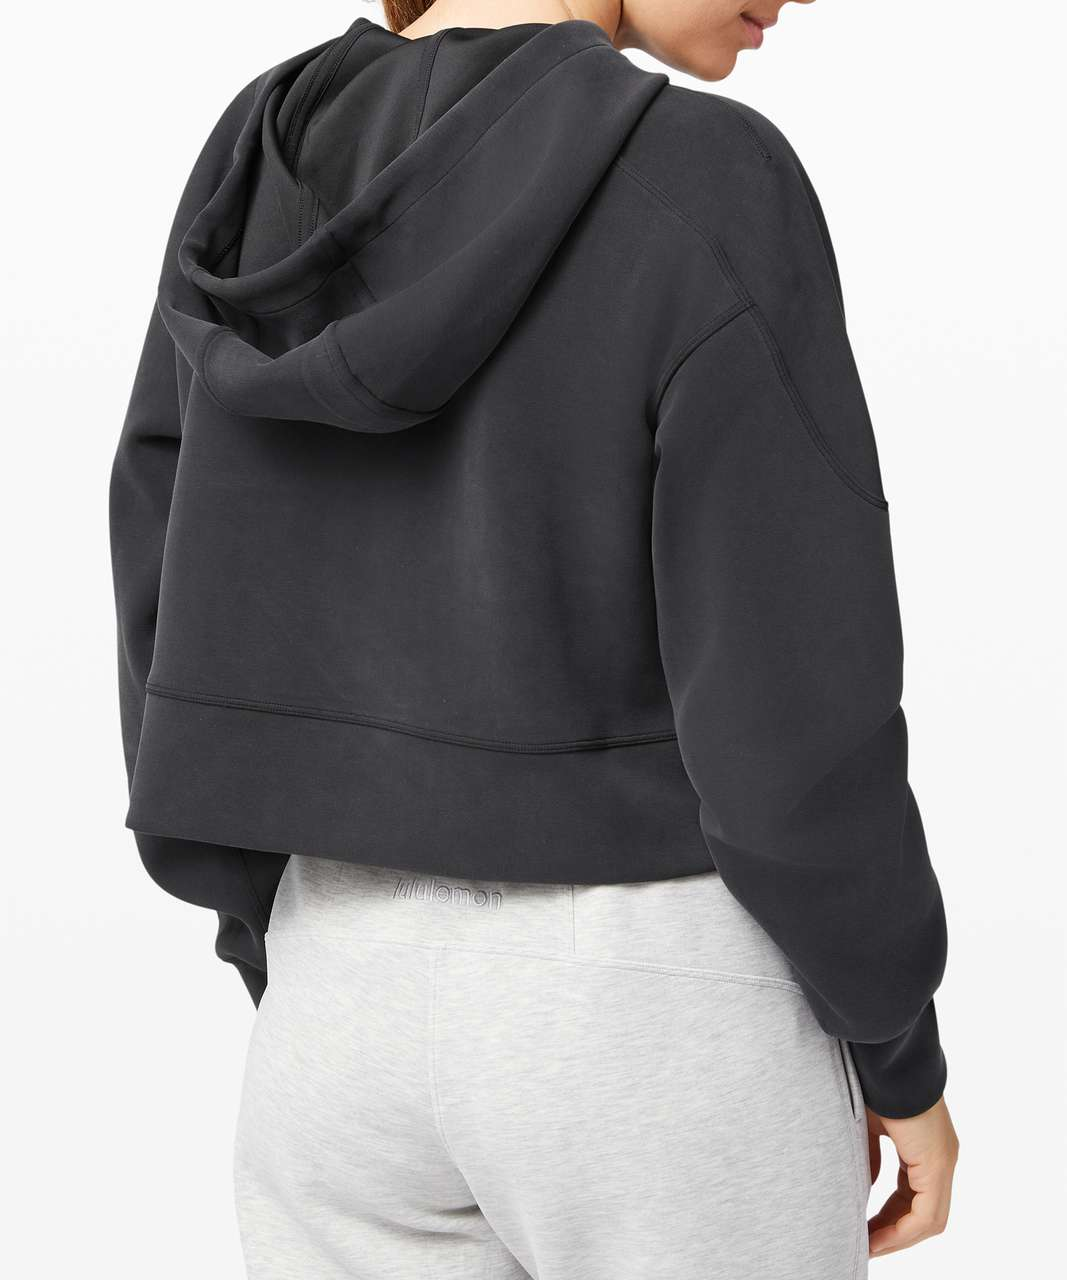 Lululemon Get Centred Crop Hoodie - Black / Black